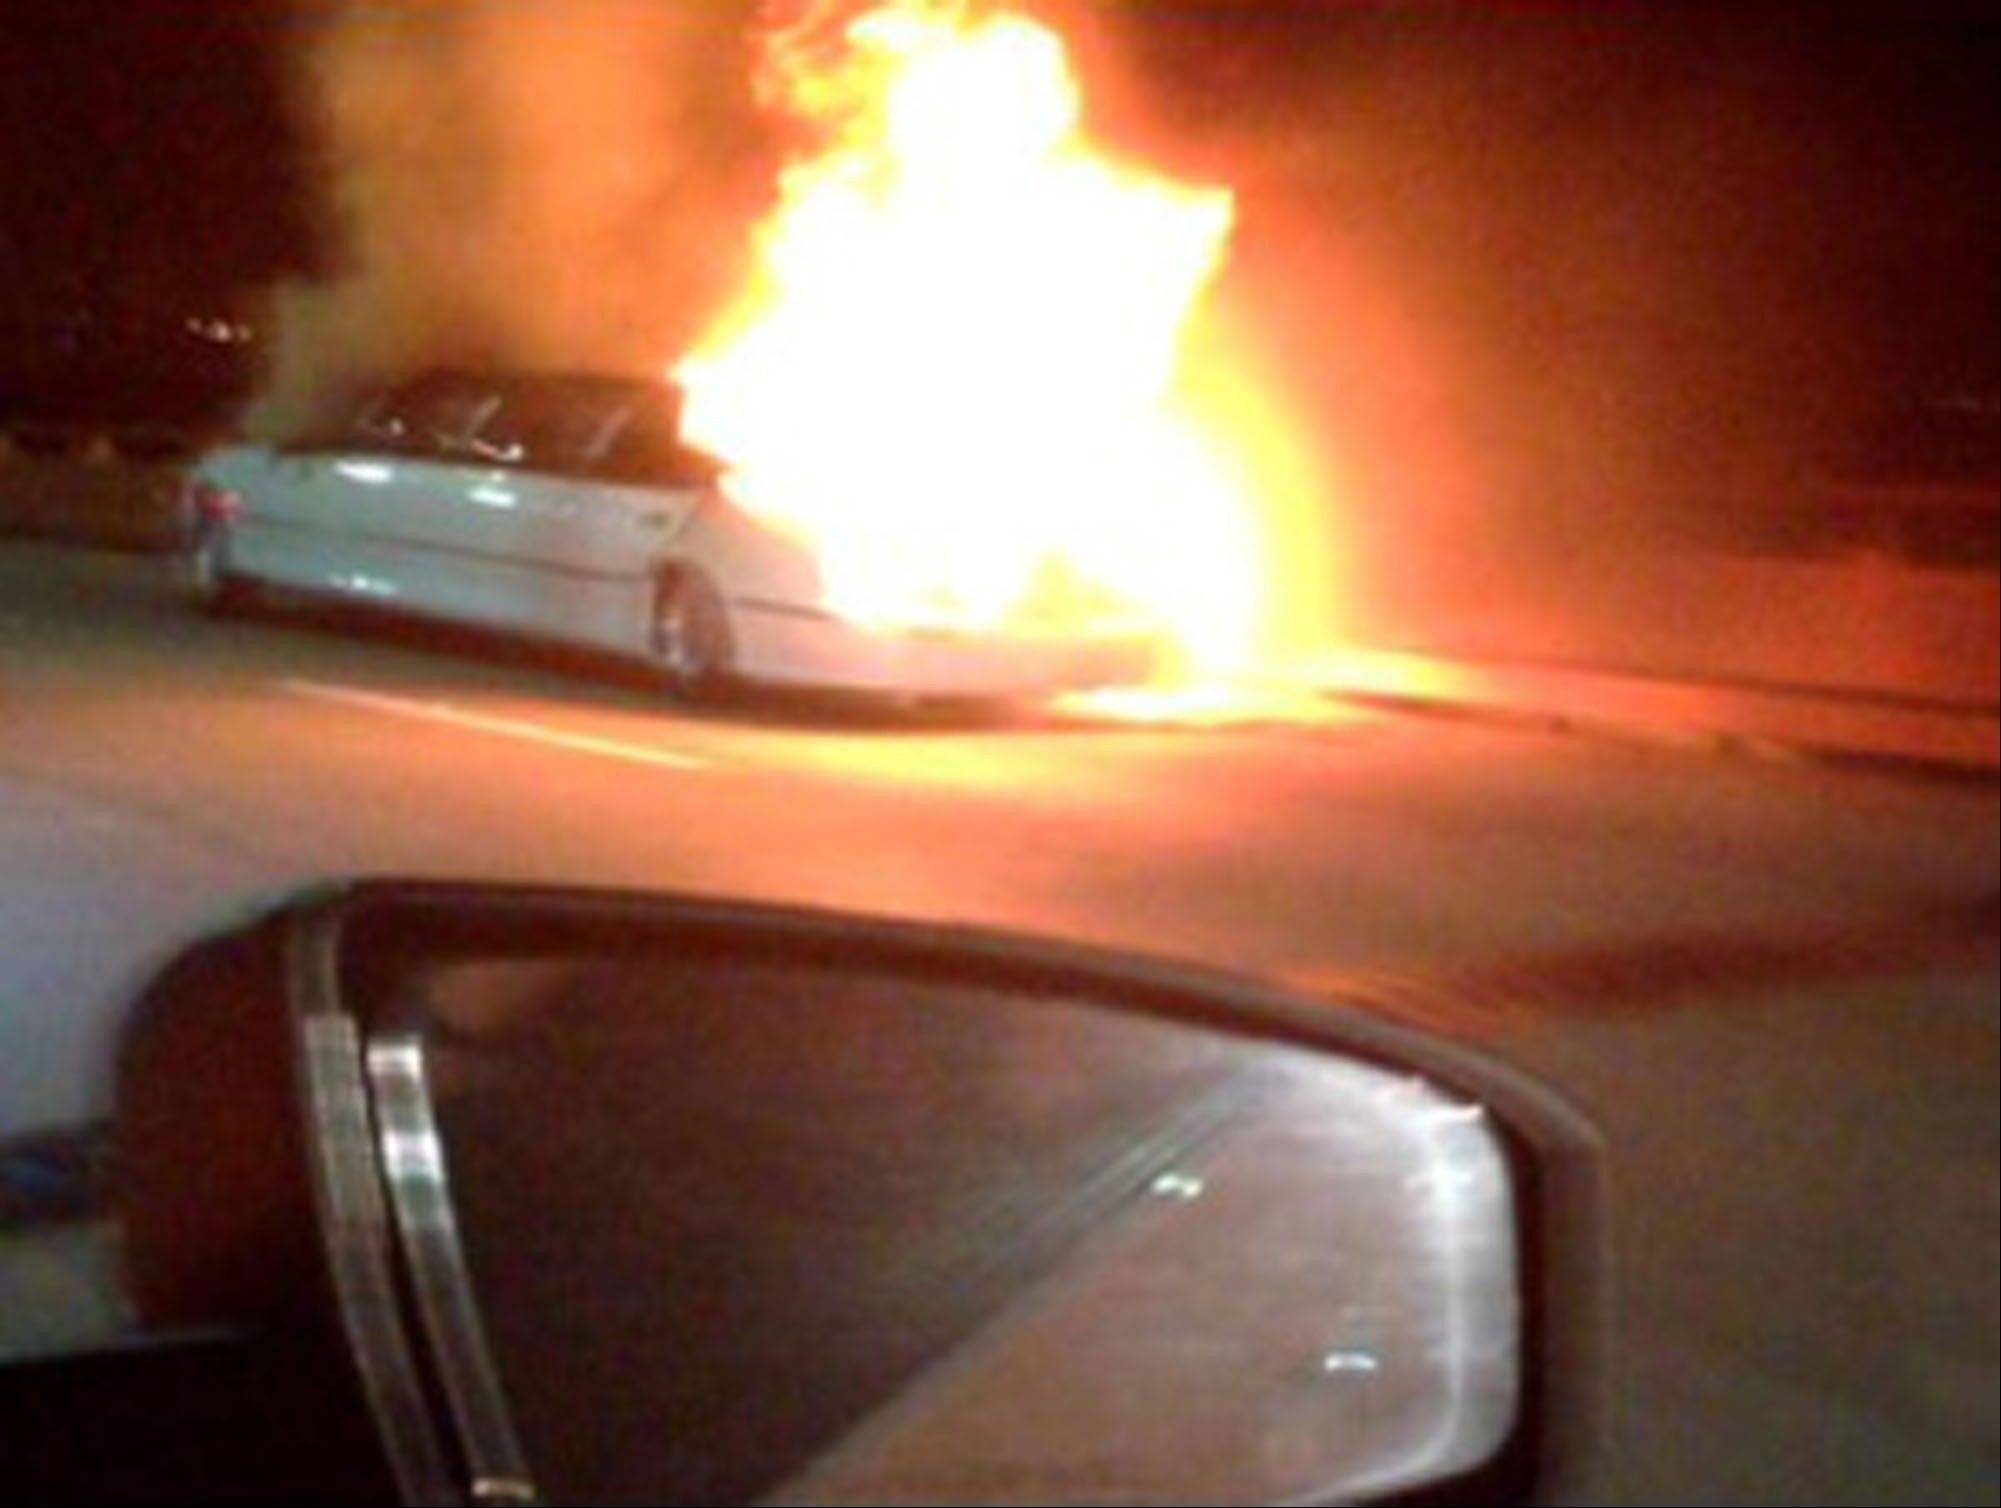 This frame grab taken from video shows a limo on fire Saturday, May 4, 2013, on the San Mateo-Hayward Bridge in San Francisco. Five dead female bodies were found pressed up against the partition behind the driver, where they apparently tried to escape the smoke and fire that kept them from the rear exits of the extended passenger compartment.